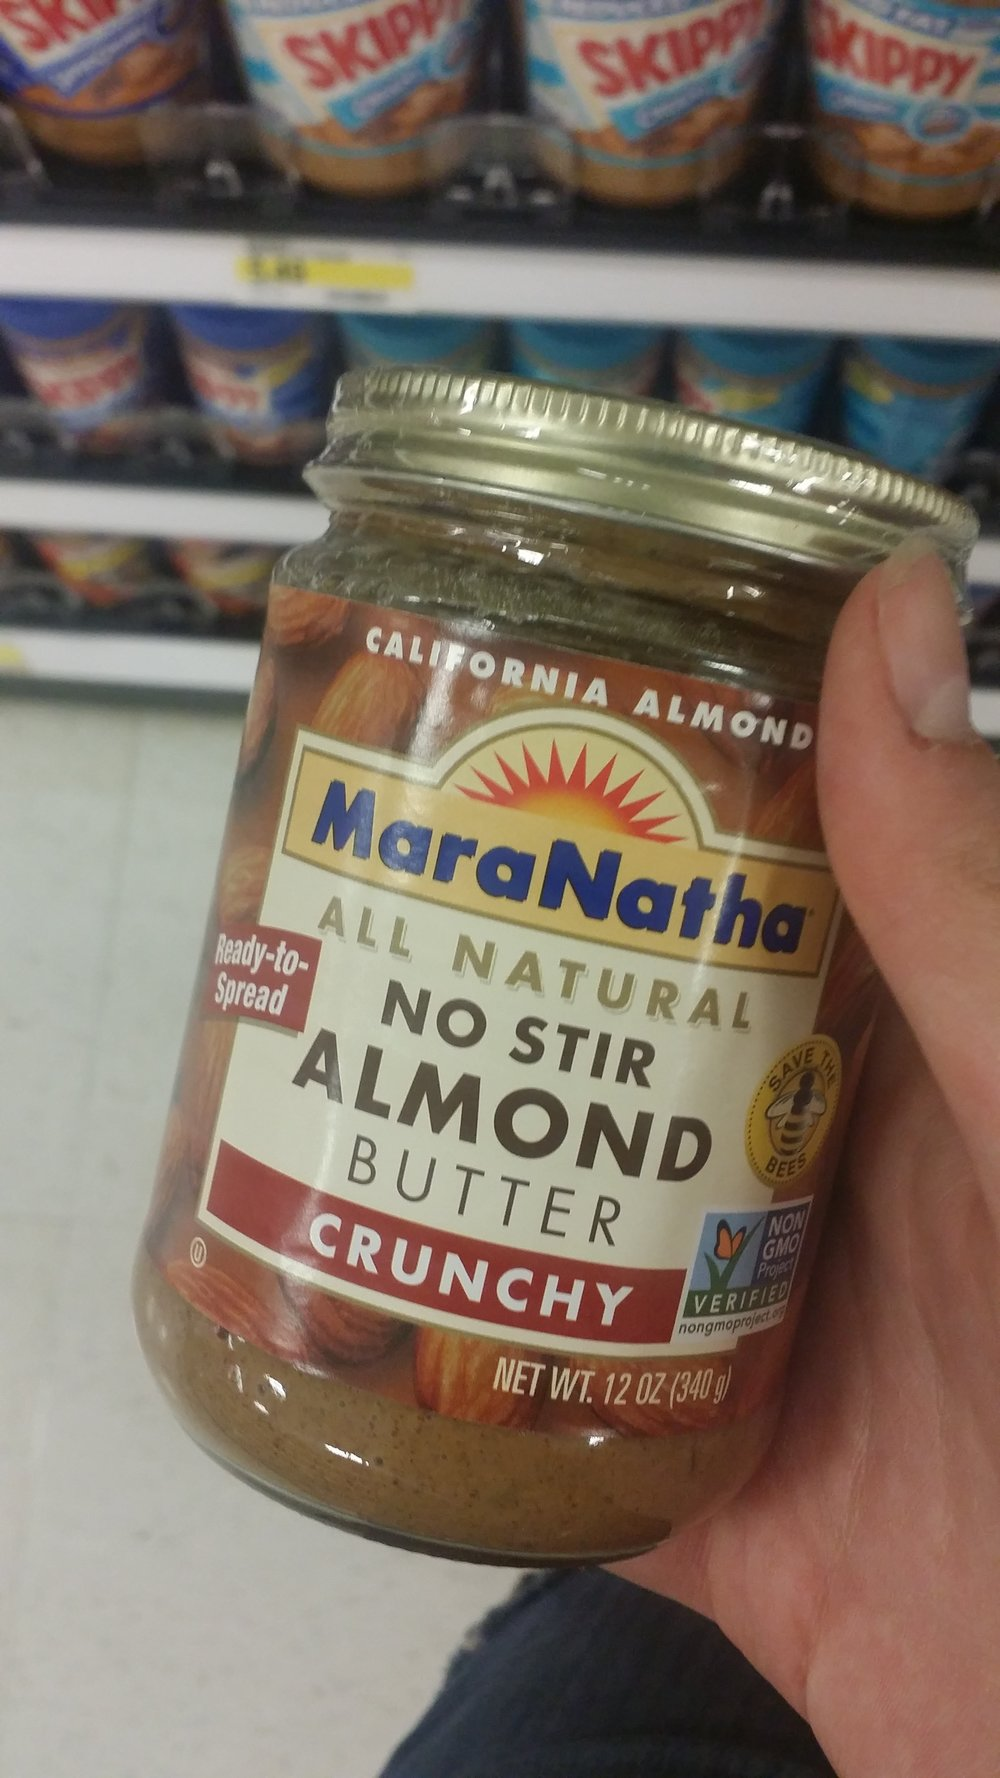 This almond butter is from California and it comes in a glass jar that can easily be reused.